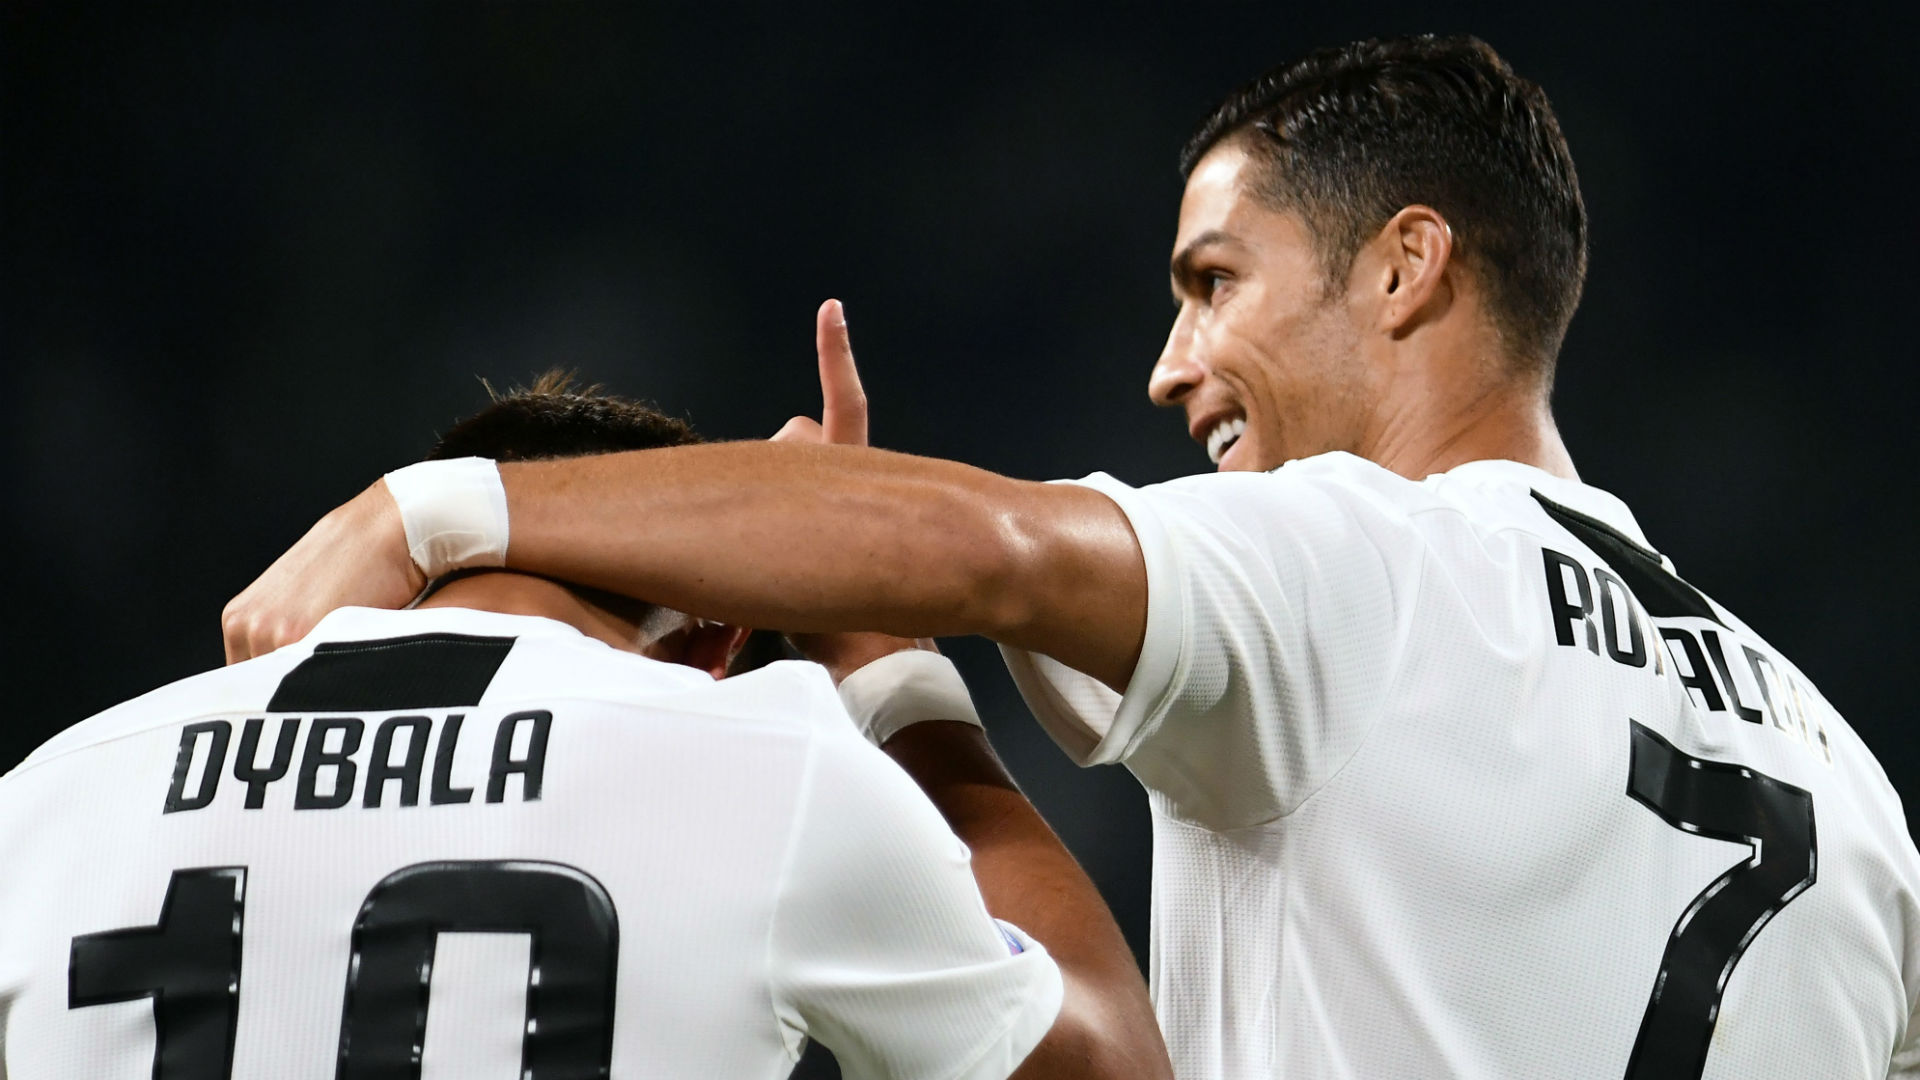 Juventus extend perfect start to Serie A campaign